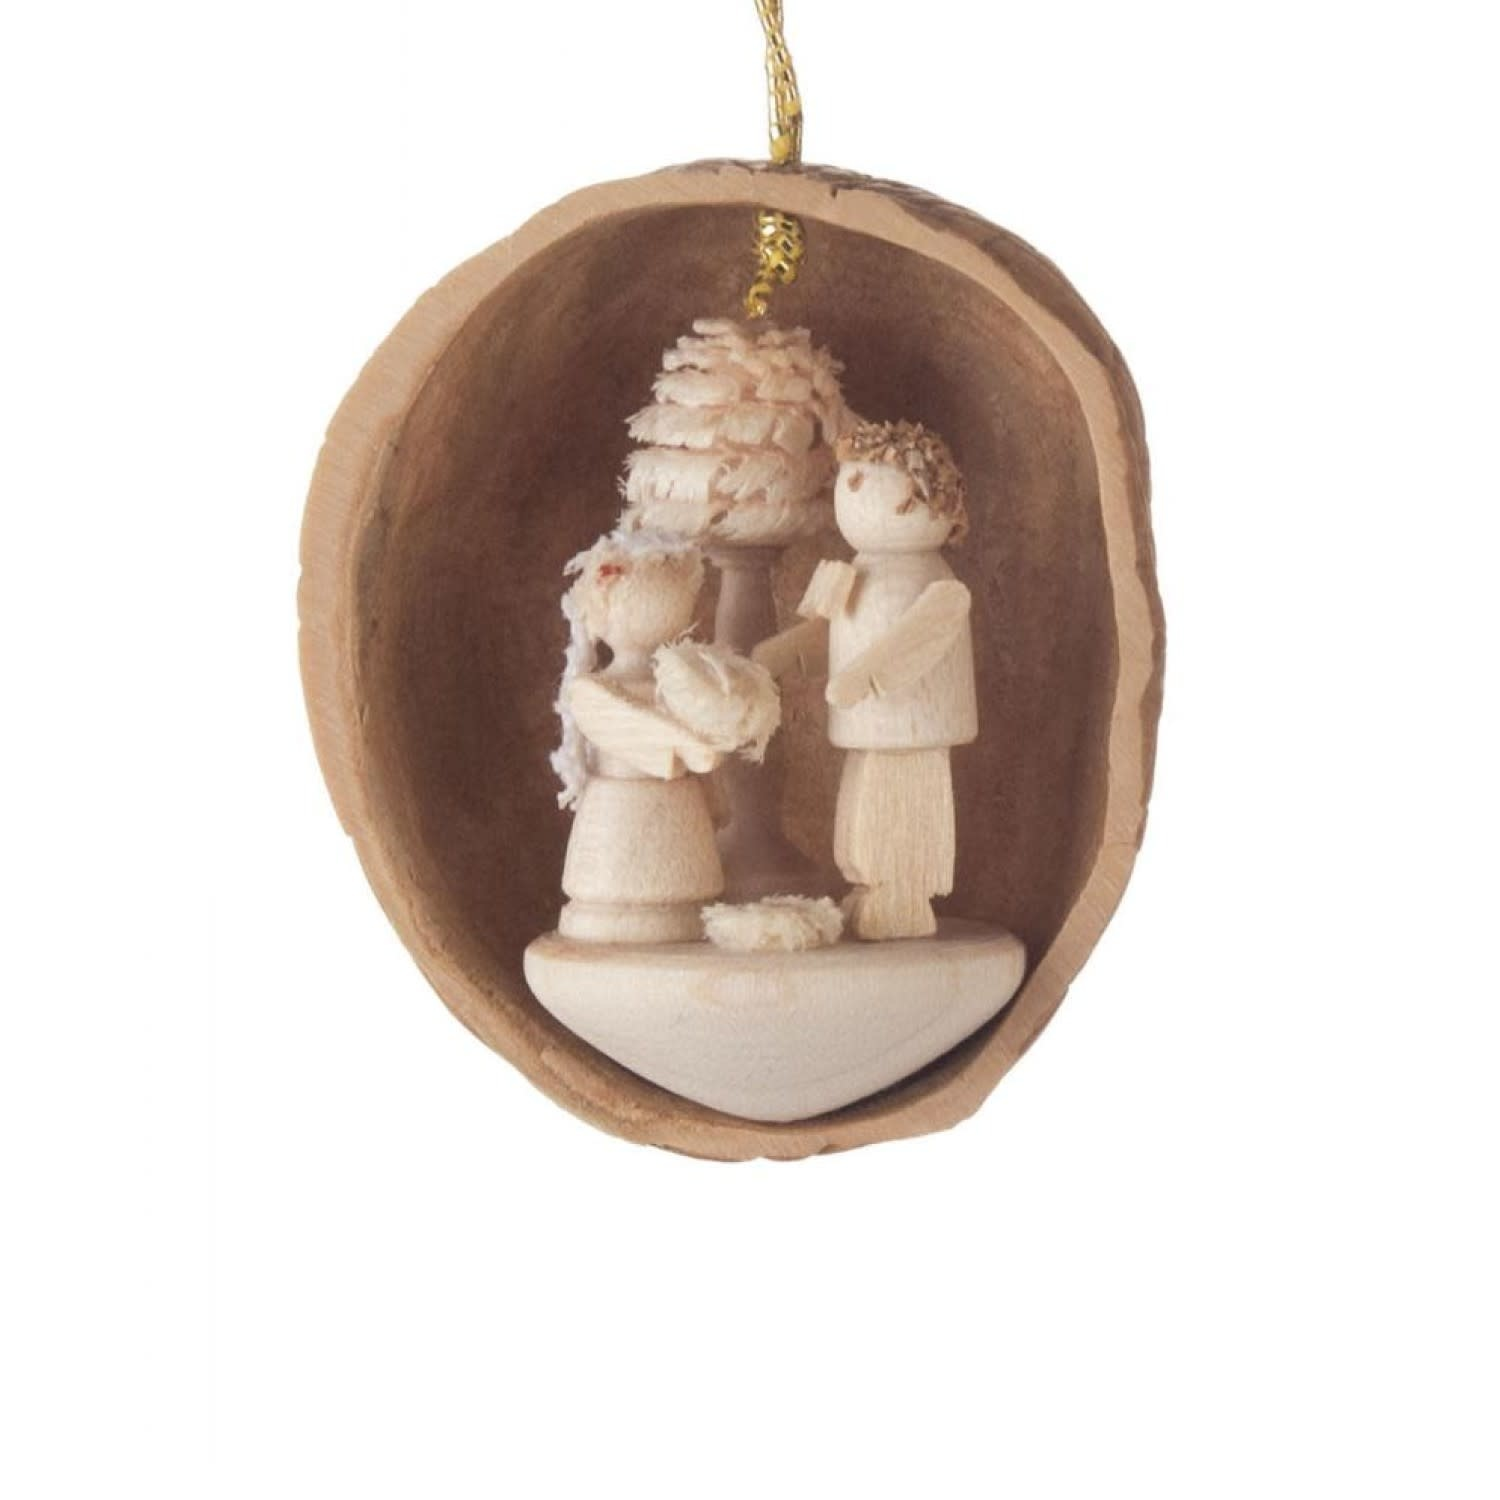 199/480  Walnut Ornament  with bridal couple